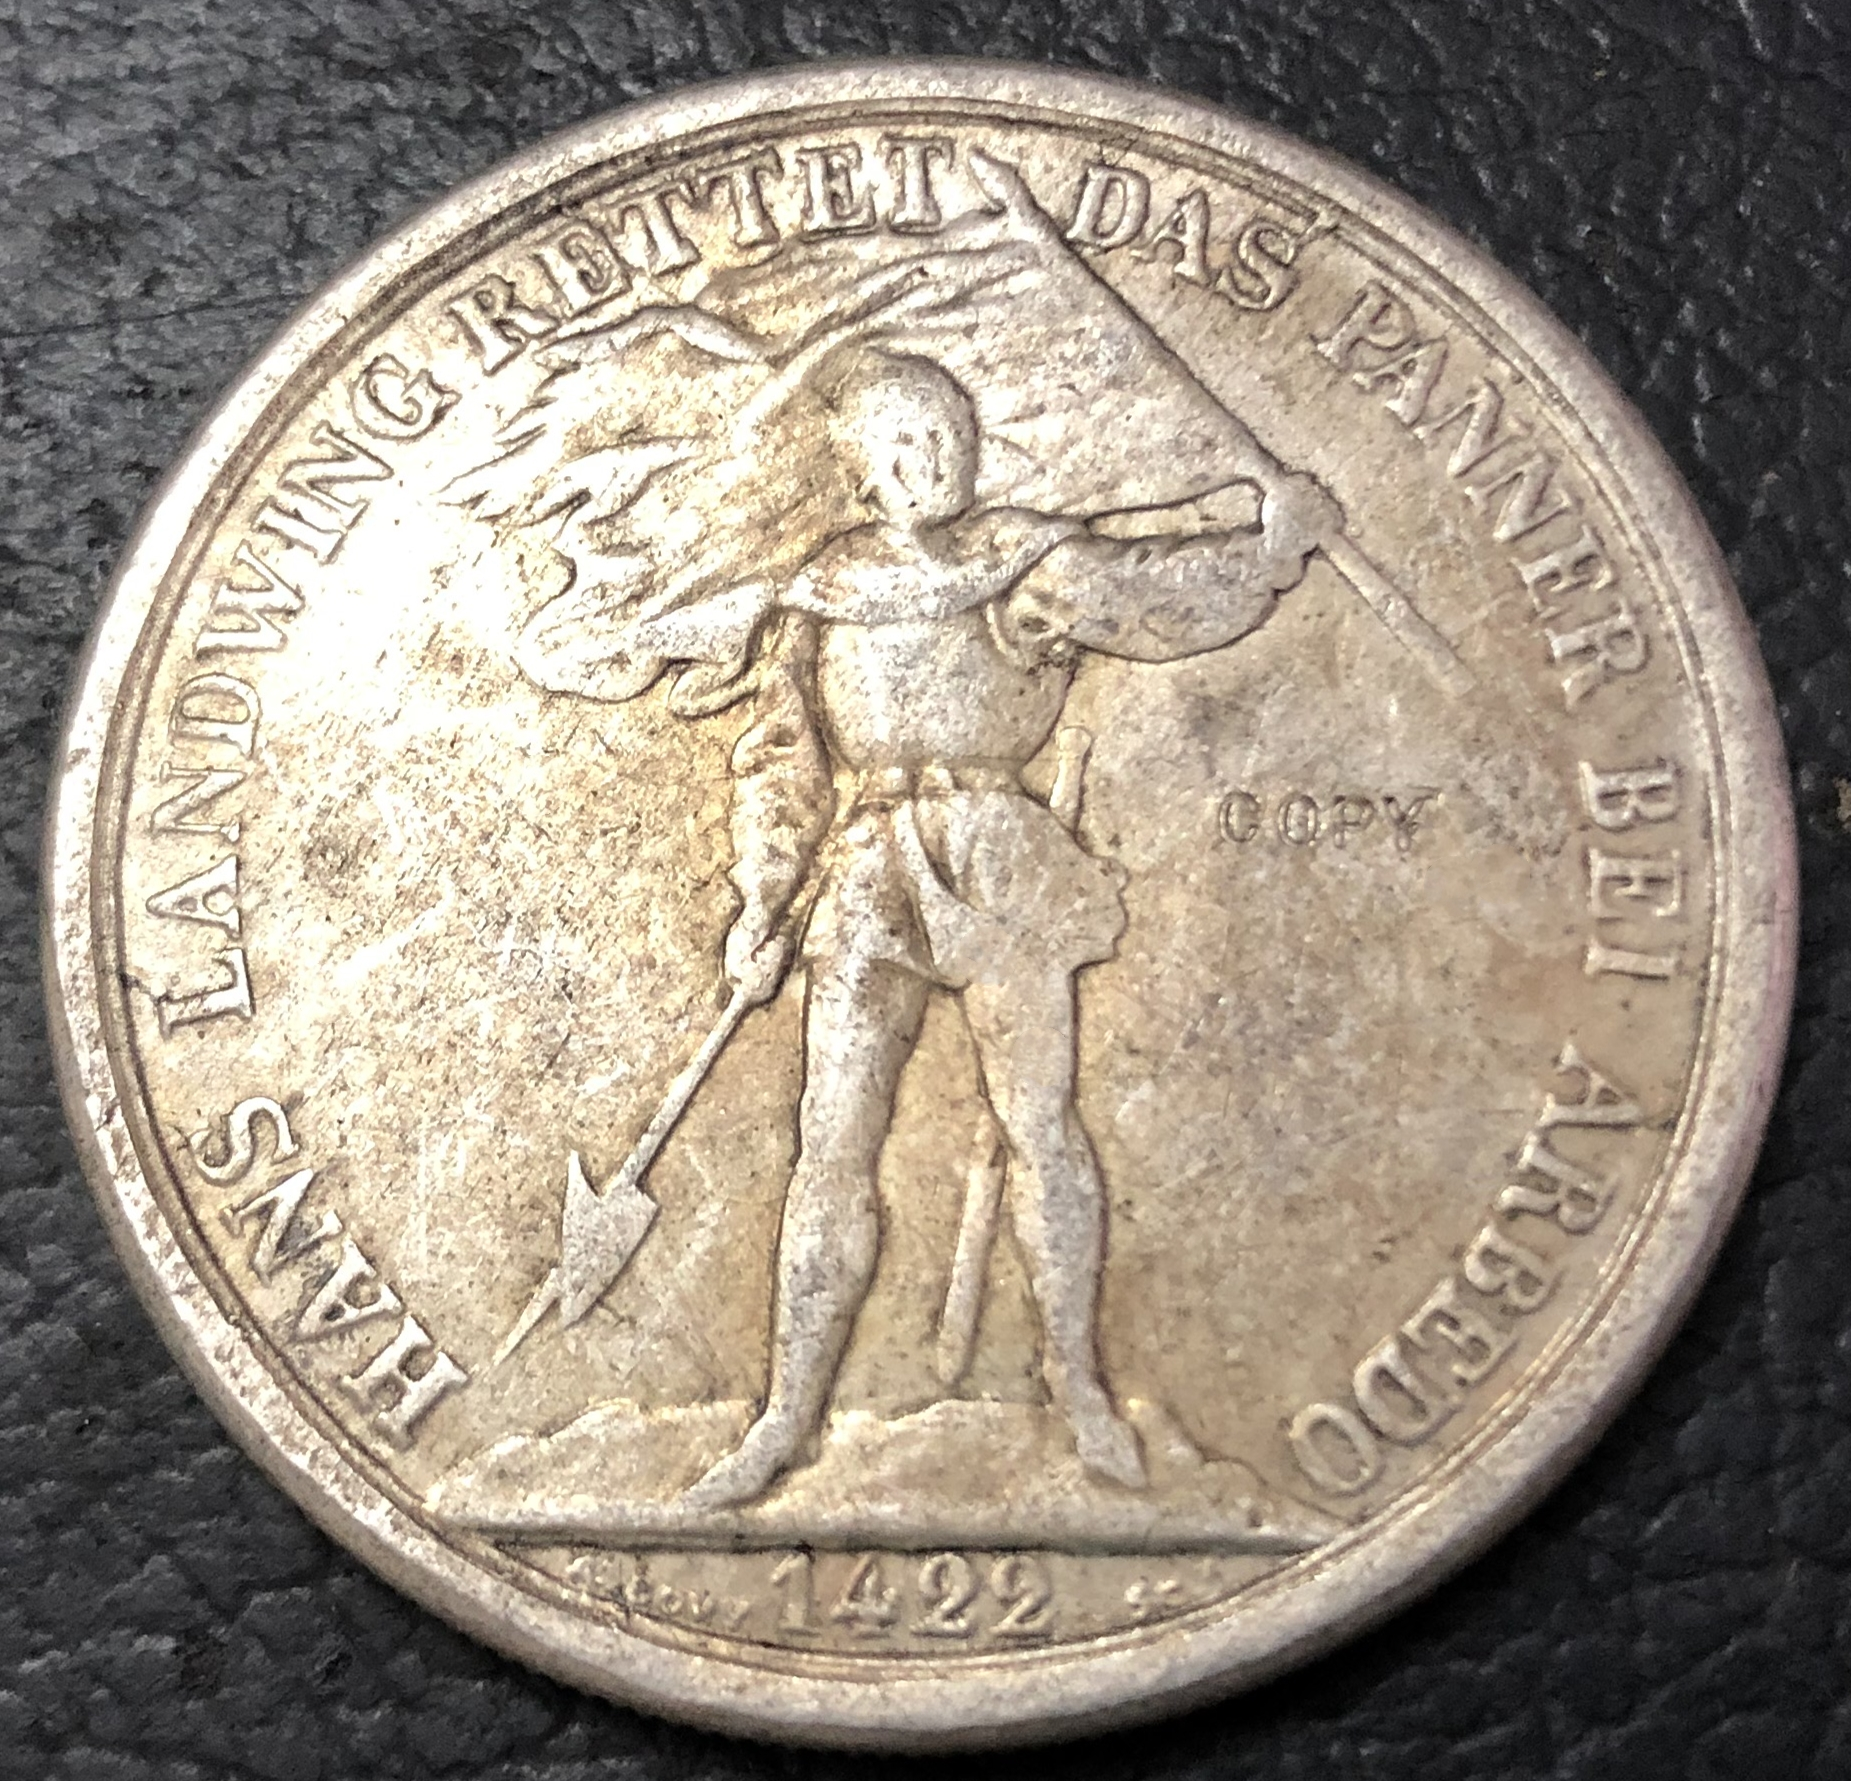 1869 Switzerland 5 Franken-shooting Festival issue coin качественная копия